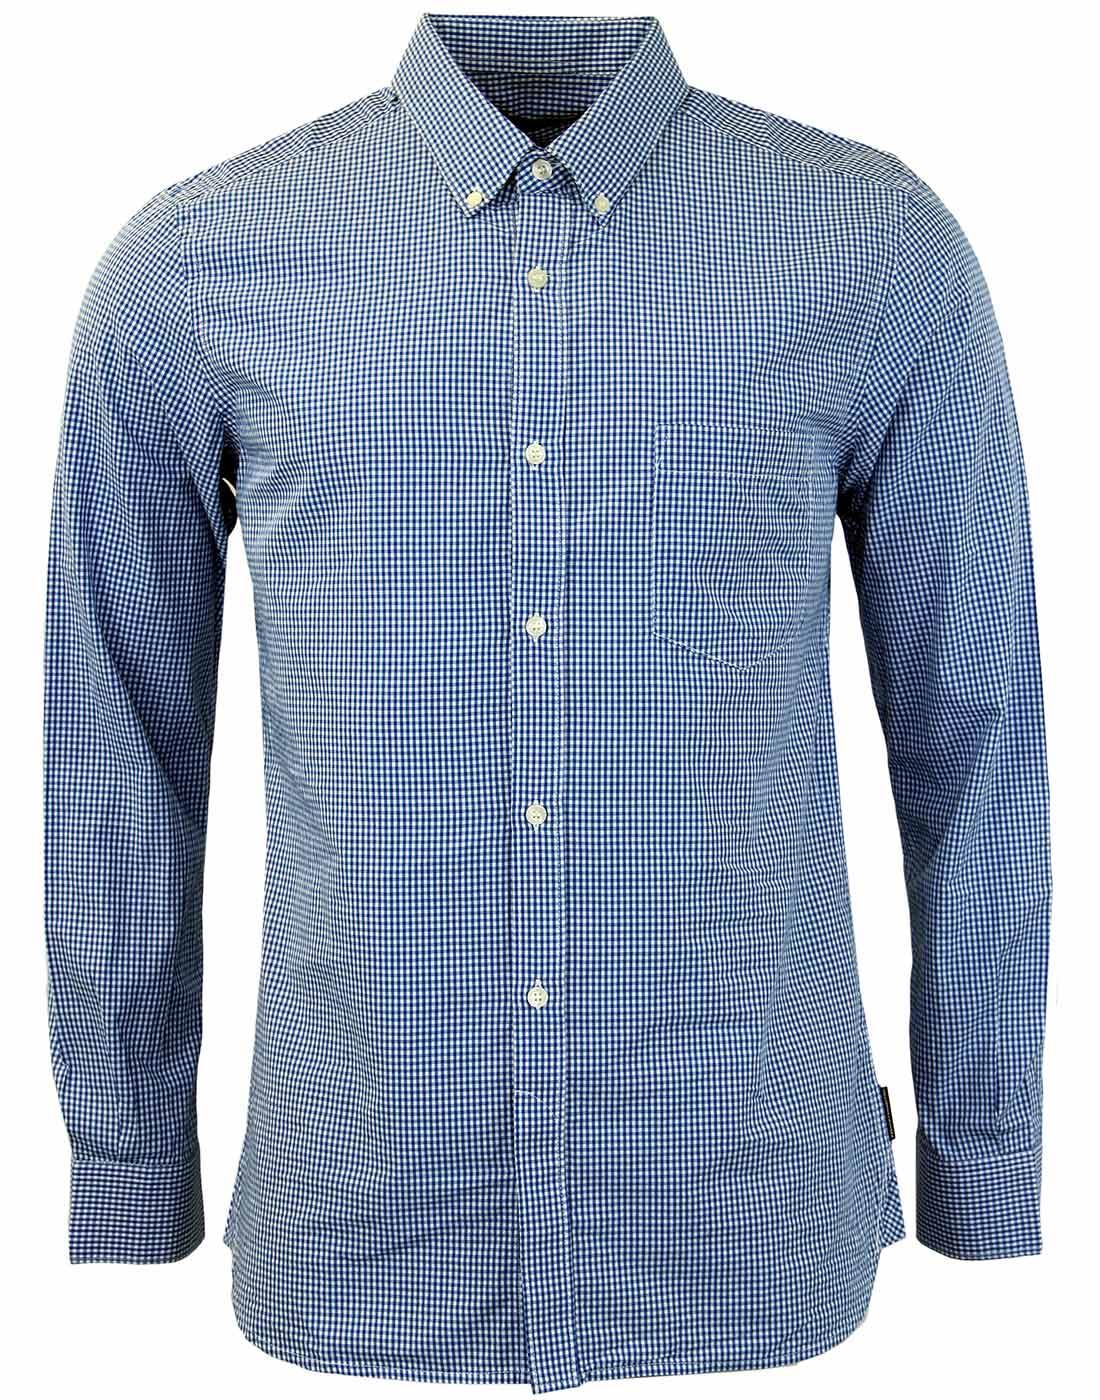 FRENCH CONNECTION Retro Mod 60s Gingham Shirt